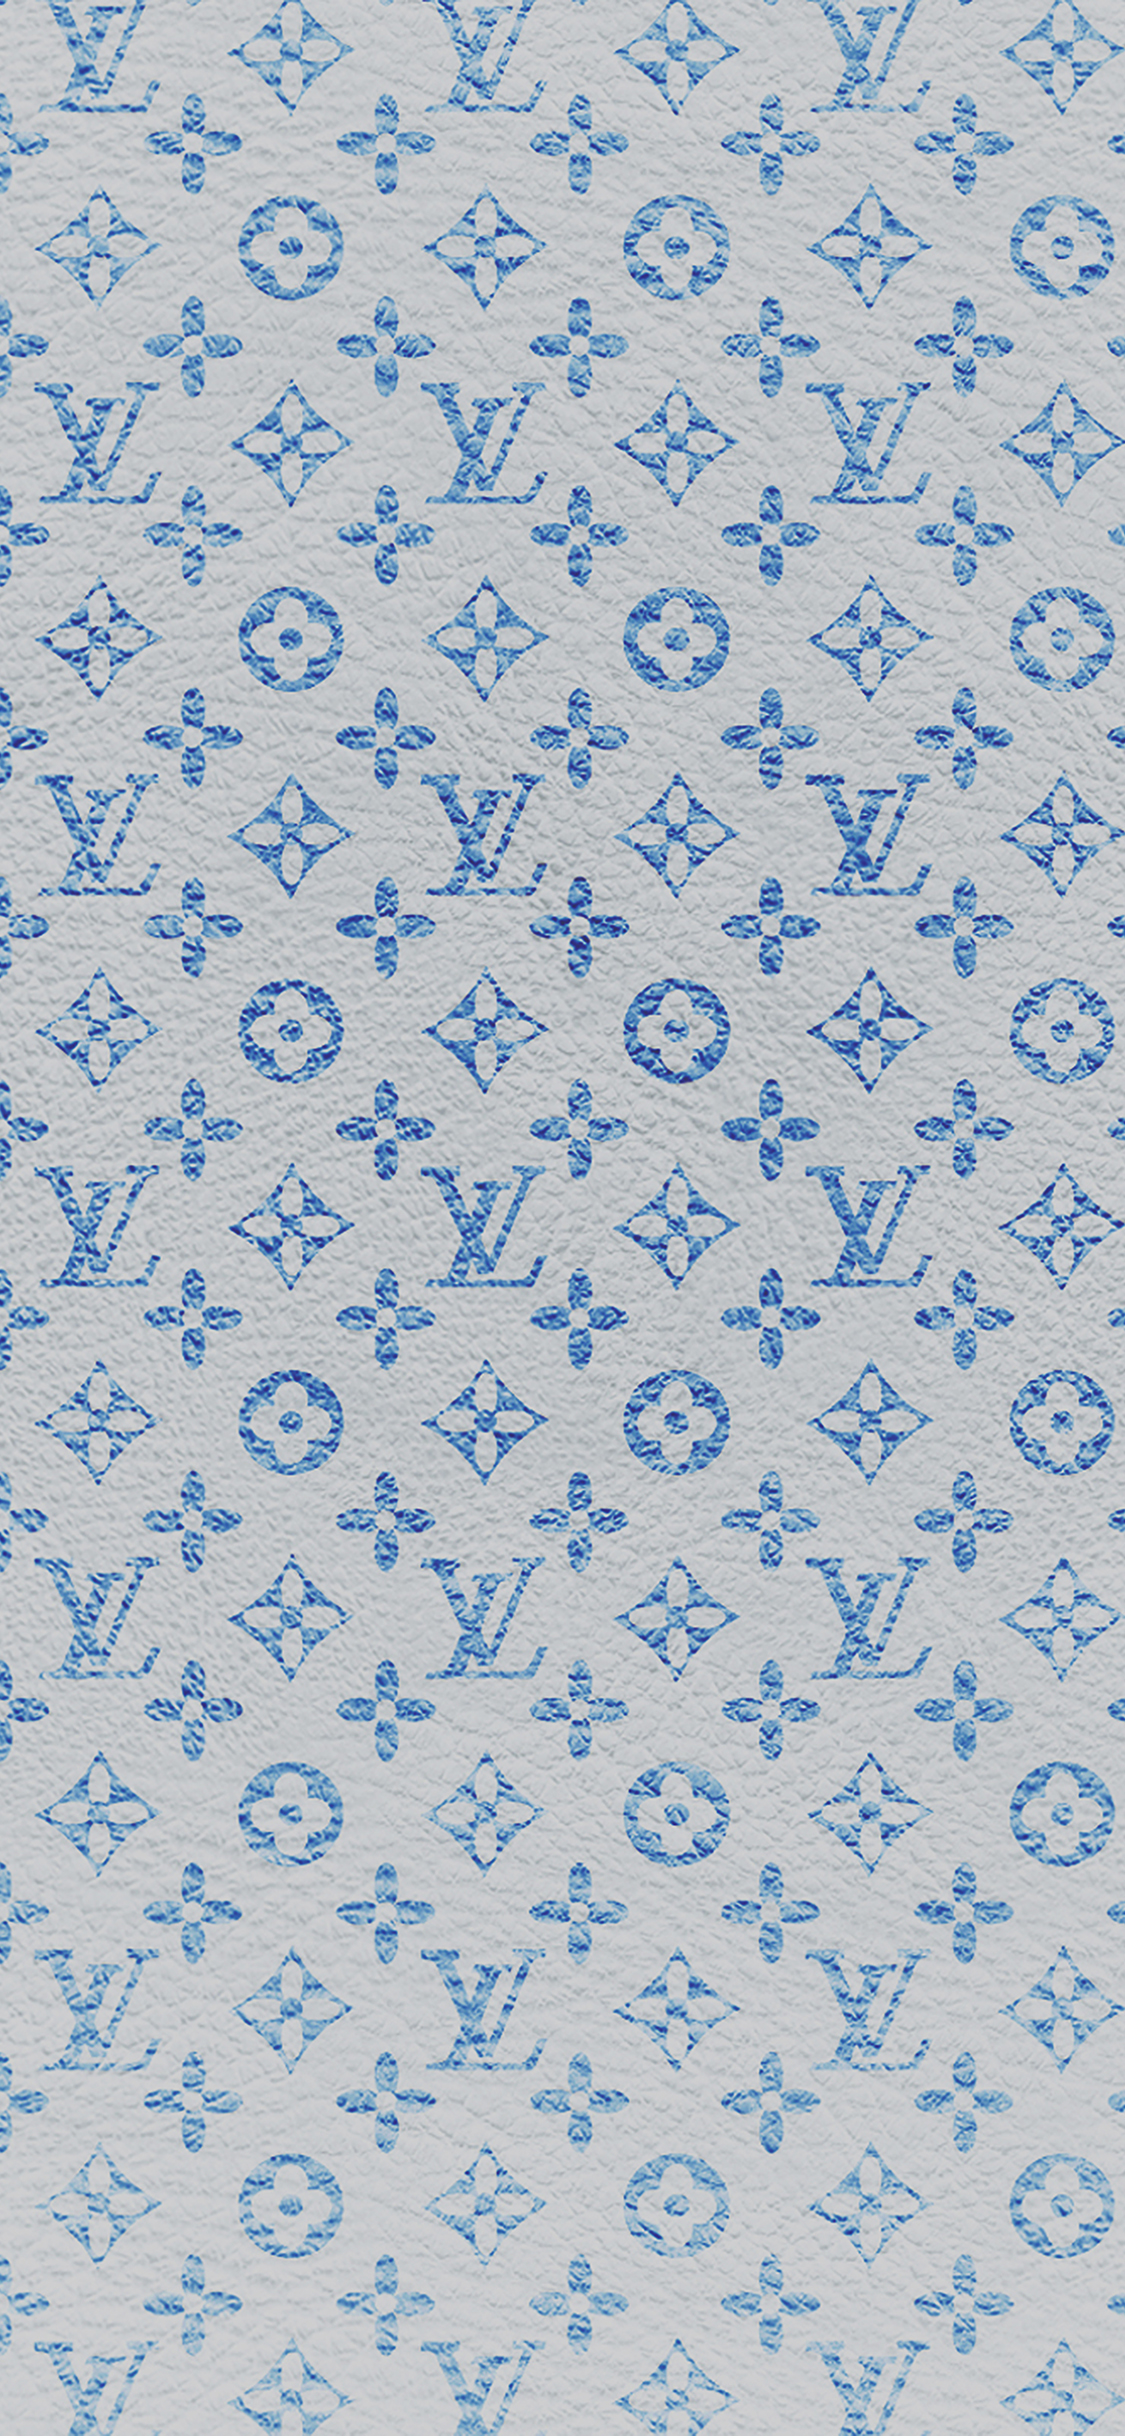 Louis Vuitton Wallpaper Iphone X Vf21 Louis Vuitton Blue Pattern Art Papers Co